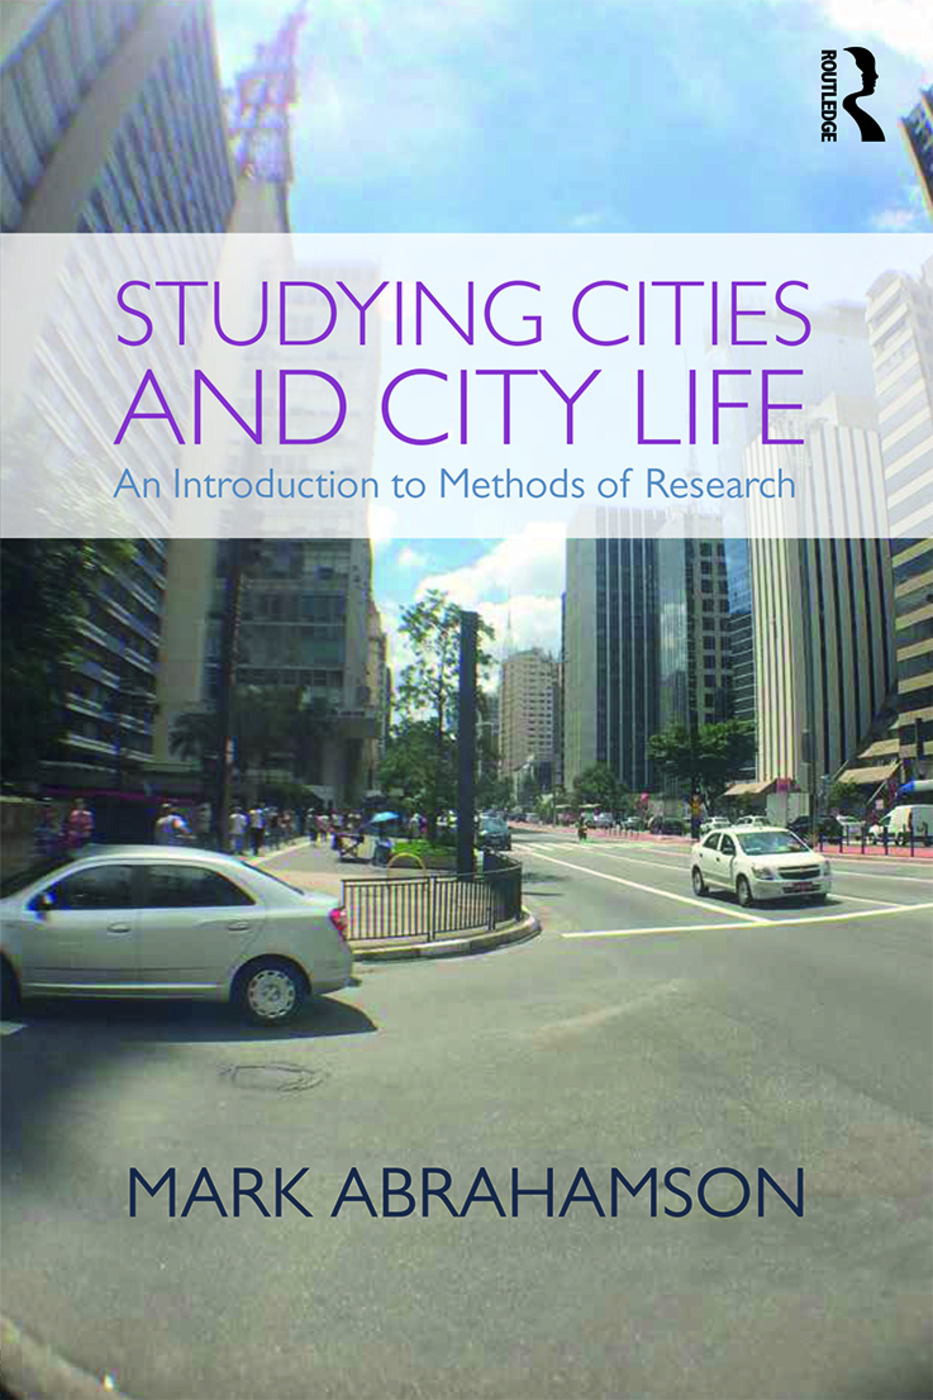 Studying Cities and City Life: An Introduction to Methods of Research book cover